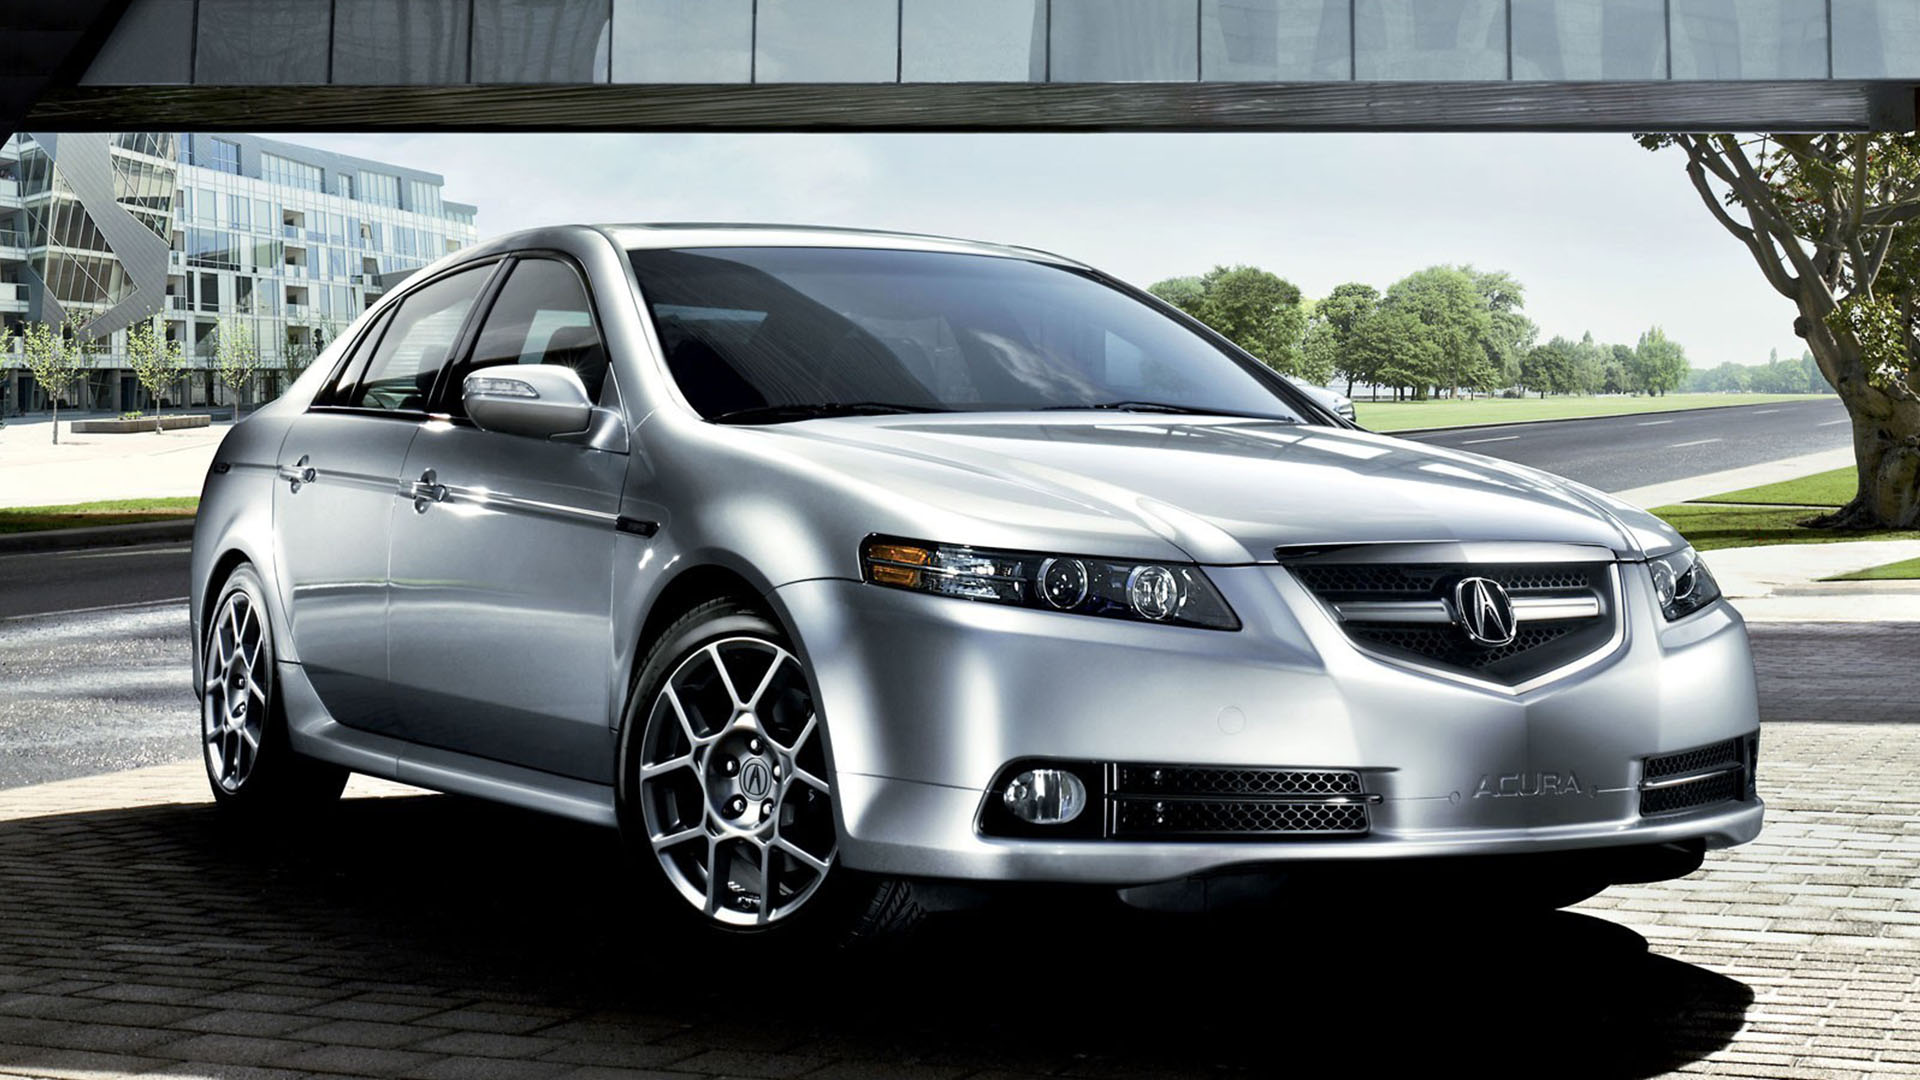 hight resolution of front view of a silver acura tl type s